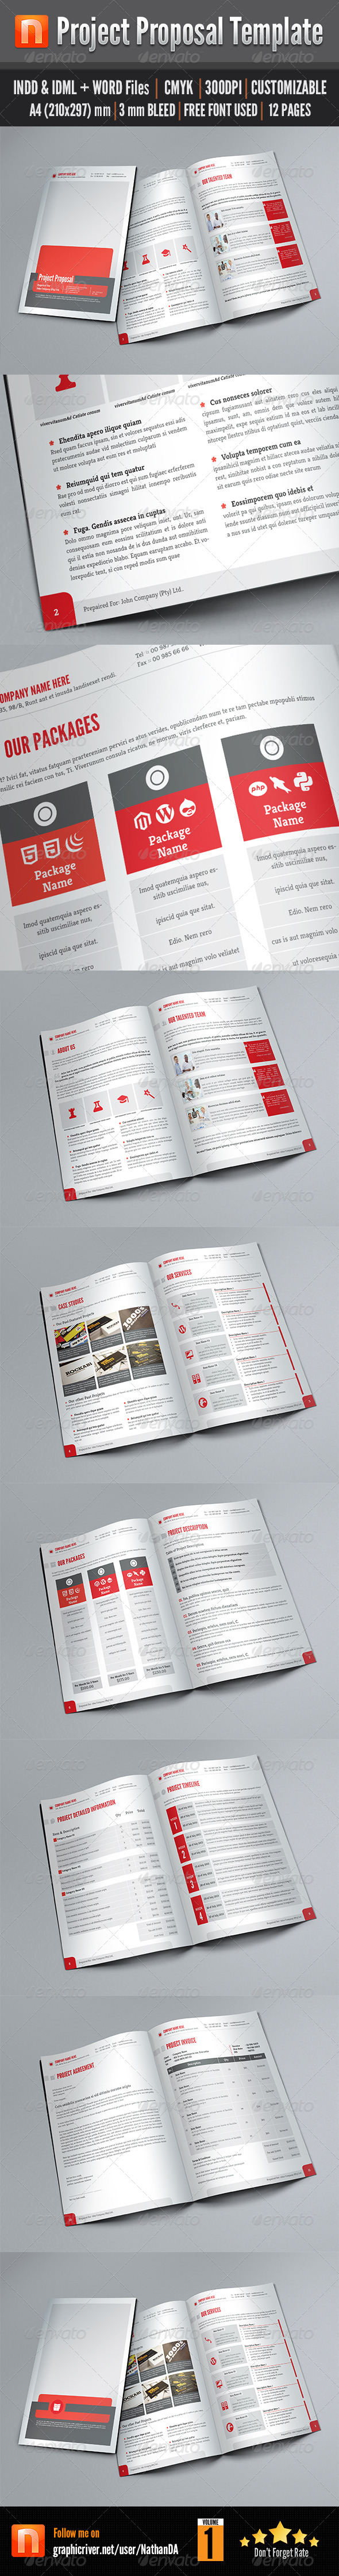 GraphicRiver Project Proposal Template V1 5292032